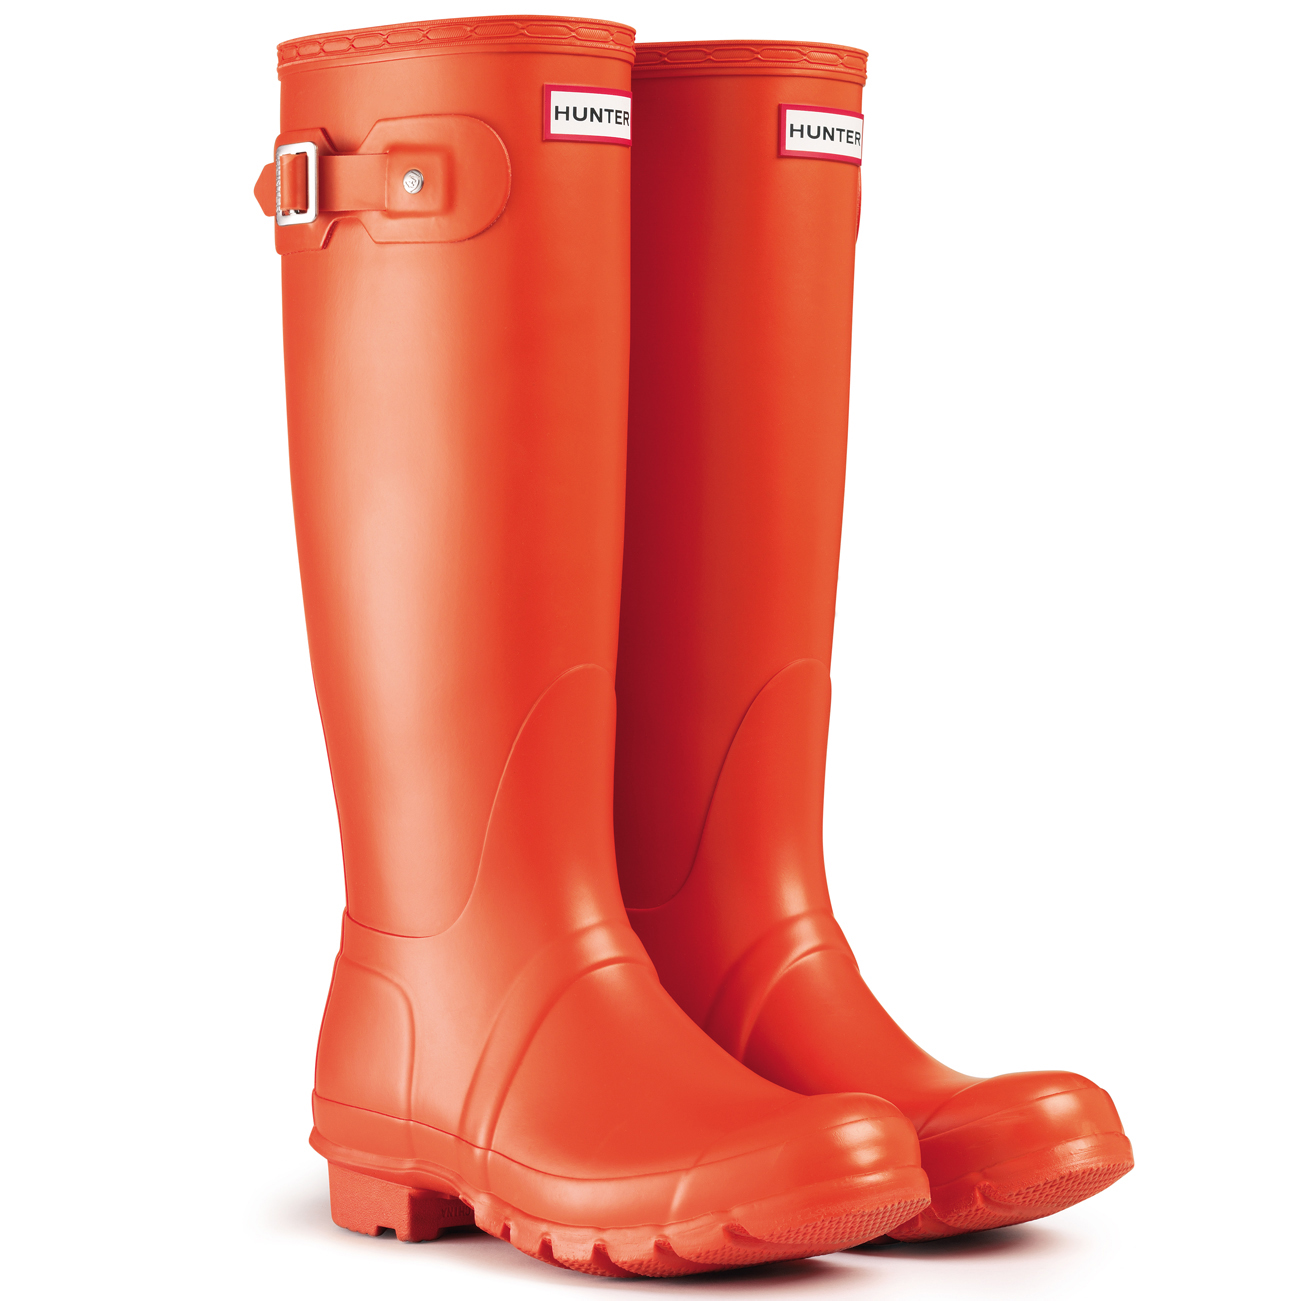 Amazing Hunter Wellingtons  The Leg Of The Boot Folds Down So You Can Pack It In Your Rucksack Without Too Much Trouble The Colour Options Are Olive, Navy, Black, Red And Green  &16390 Original Tour Boot For Festivals Tall Zip Snow Boots For